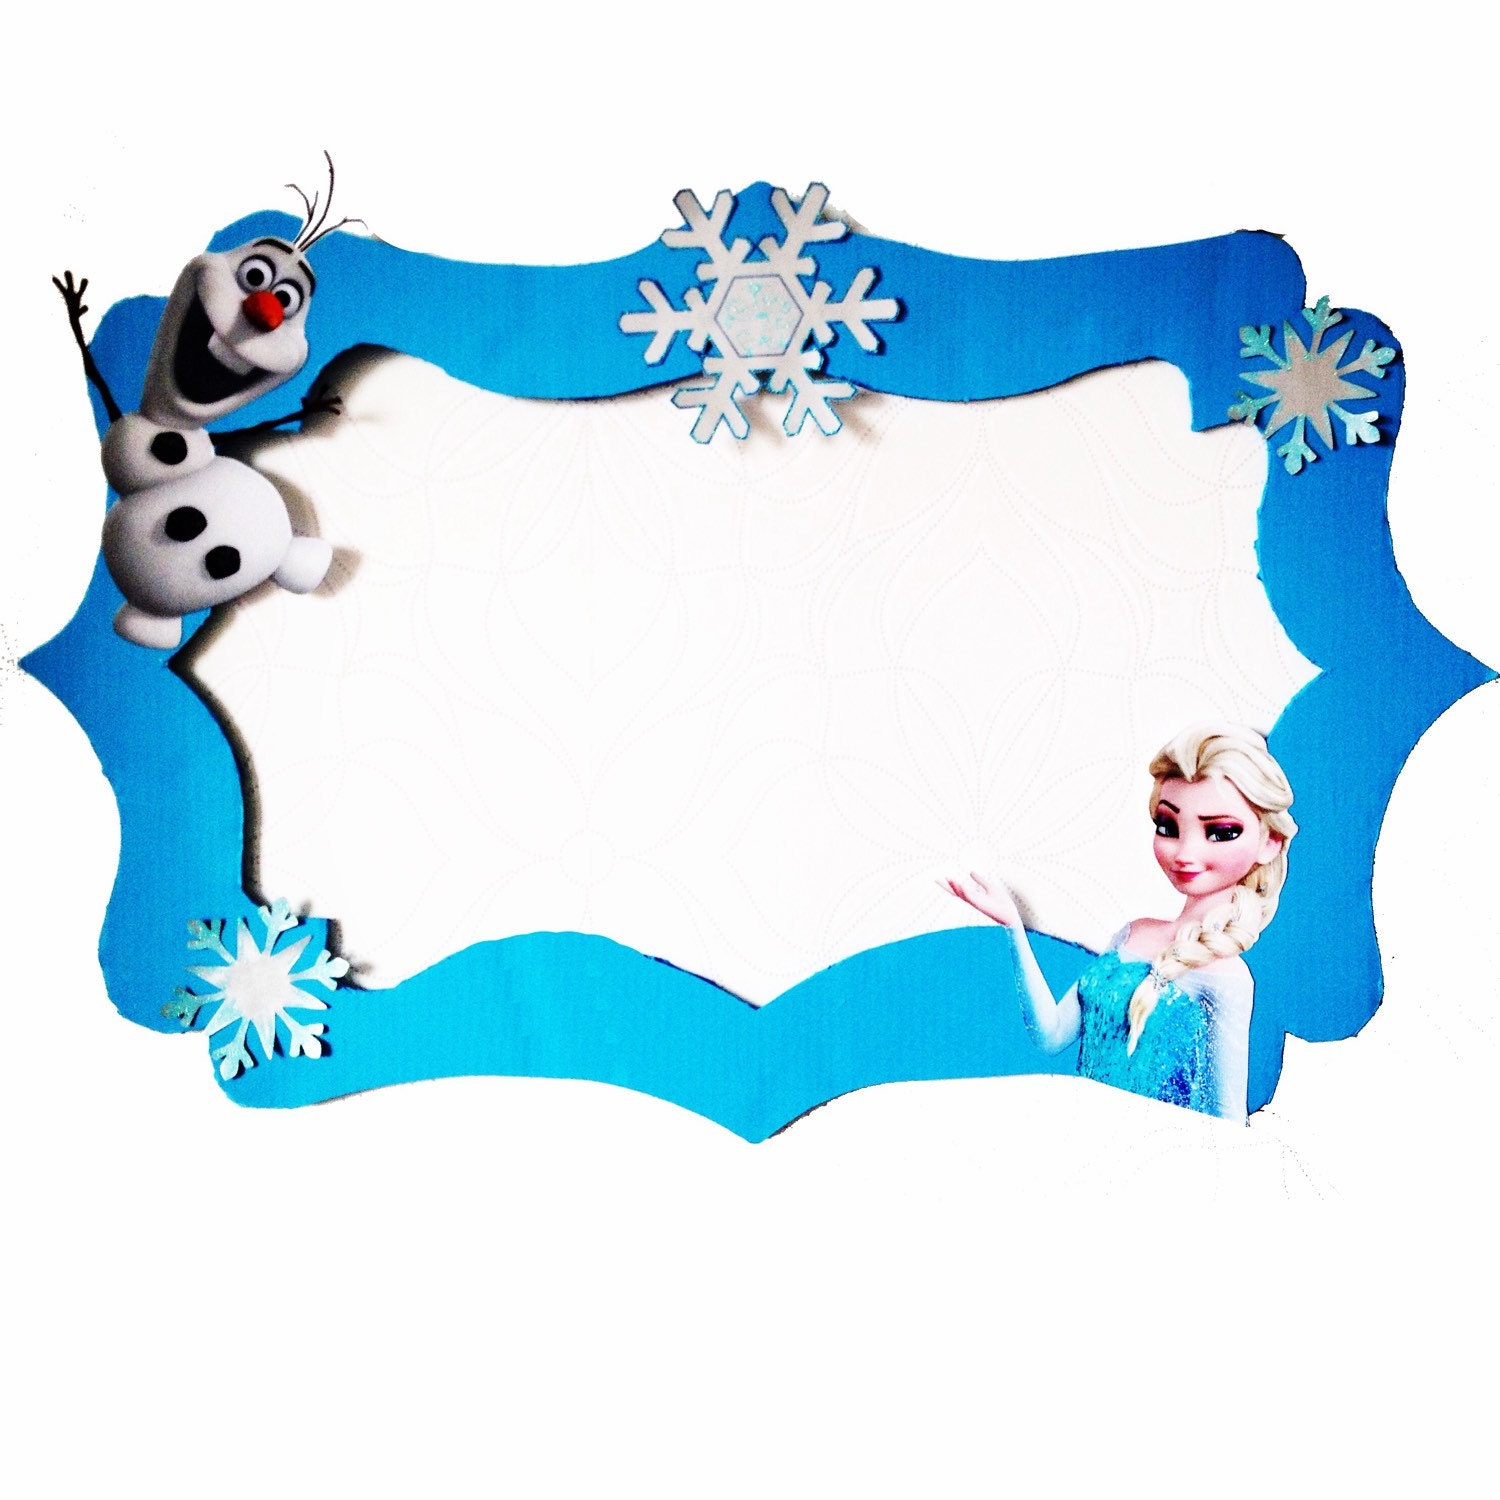 Frozen Elsa & Olaf Photo Booth Frame Party Prop to take